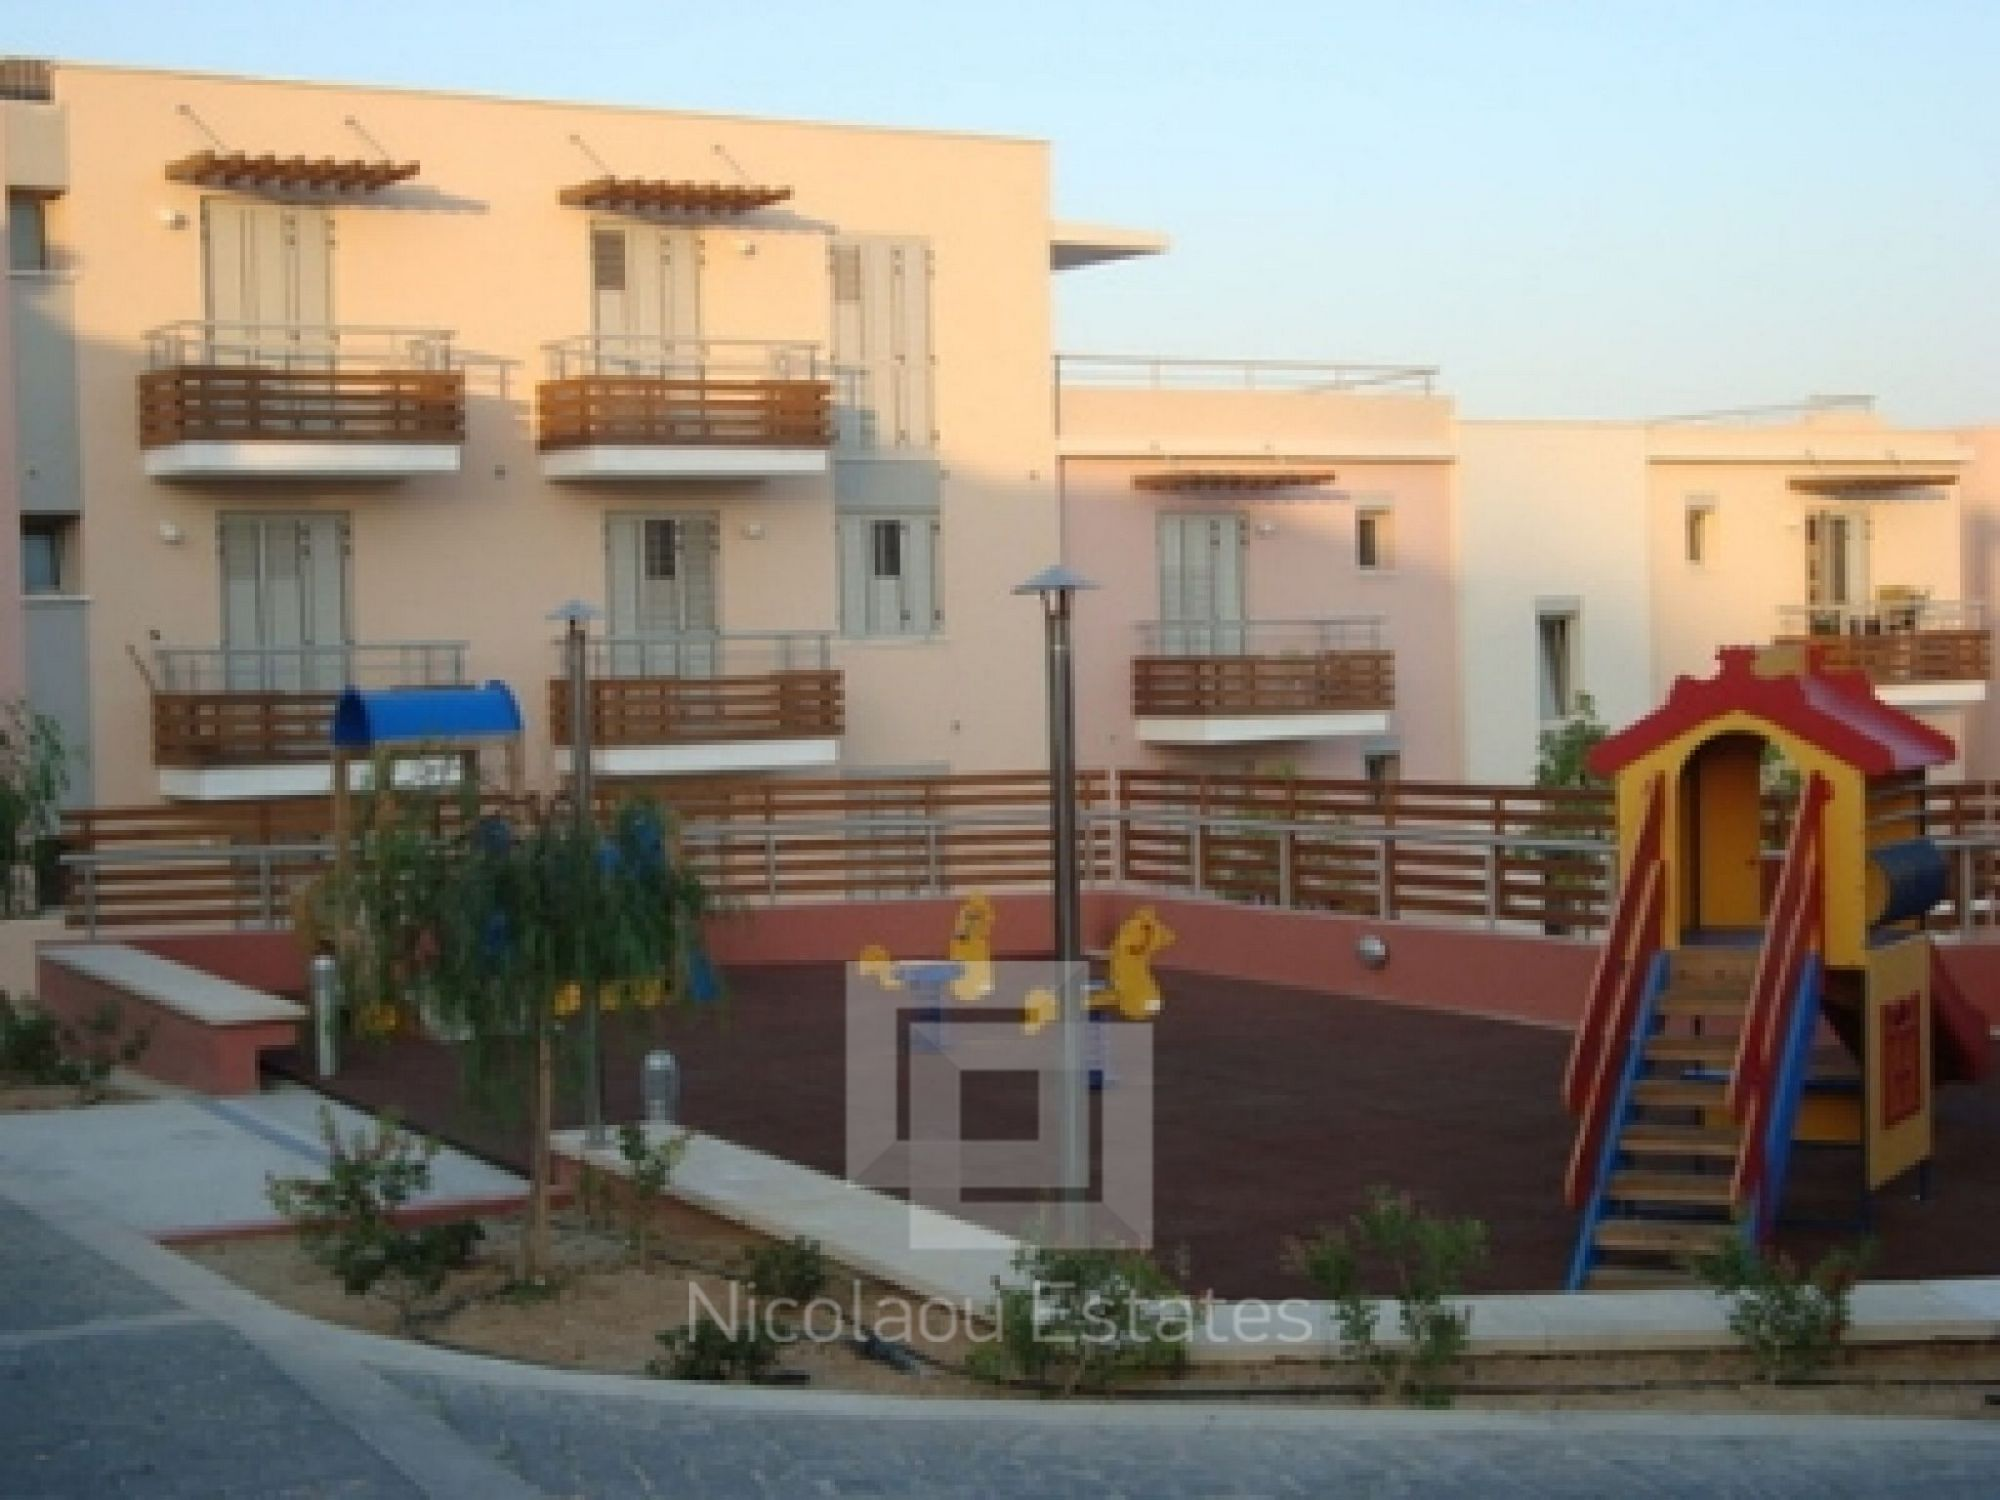 Archived Modern 2 Bed Furnished Apartment In Exclusive Area Near The Beach Eur 850